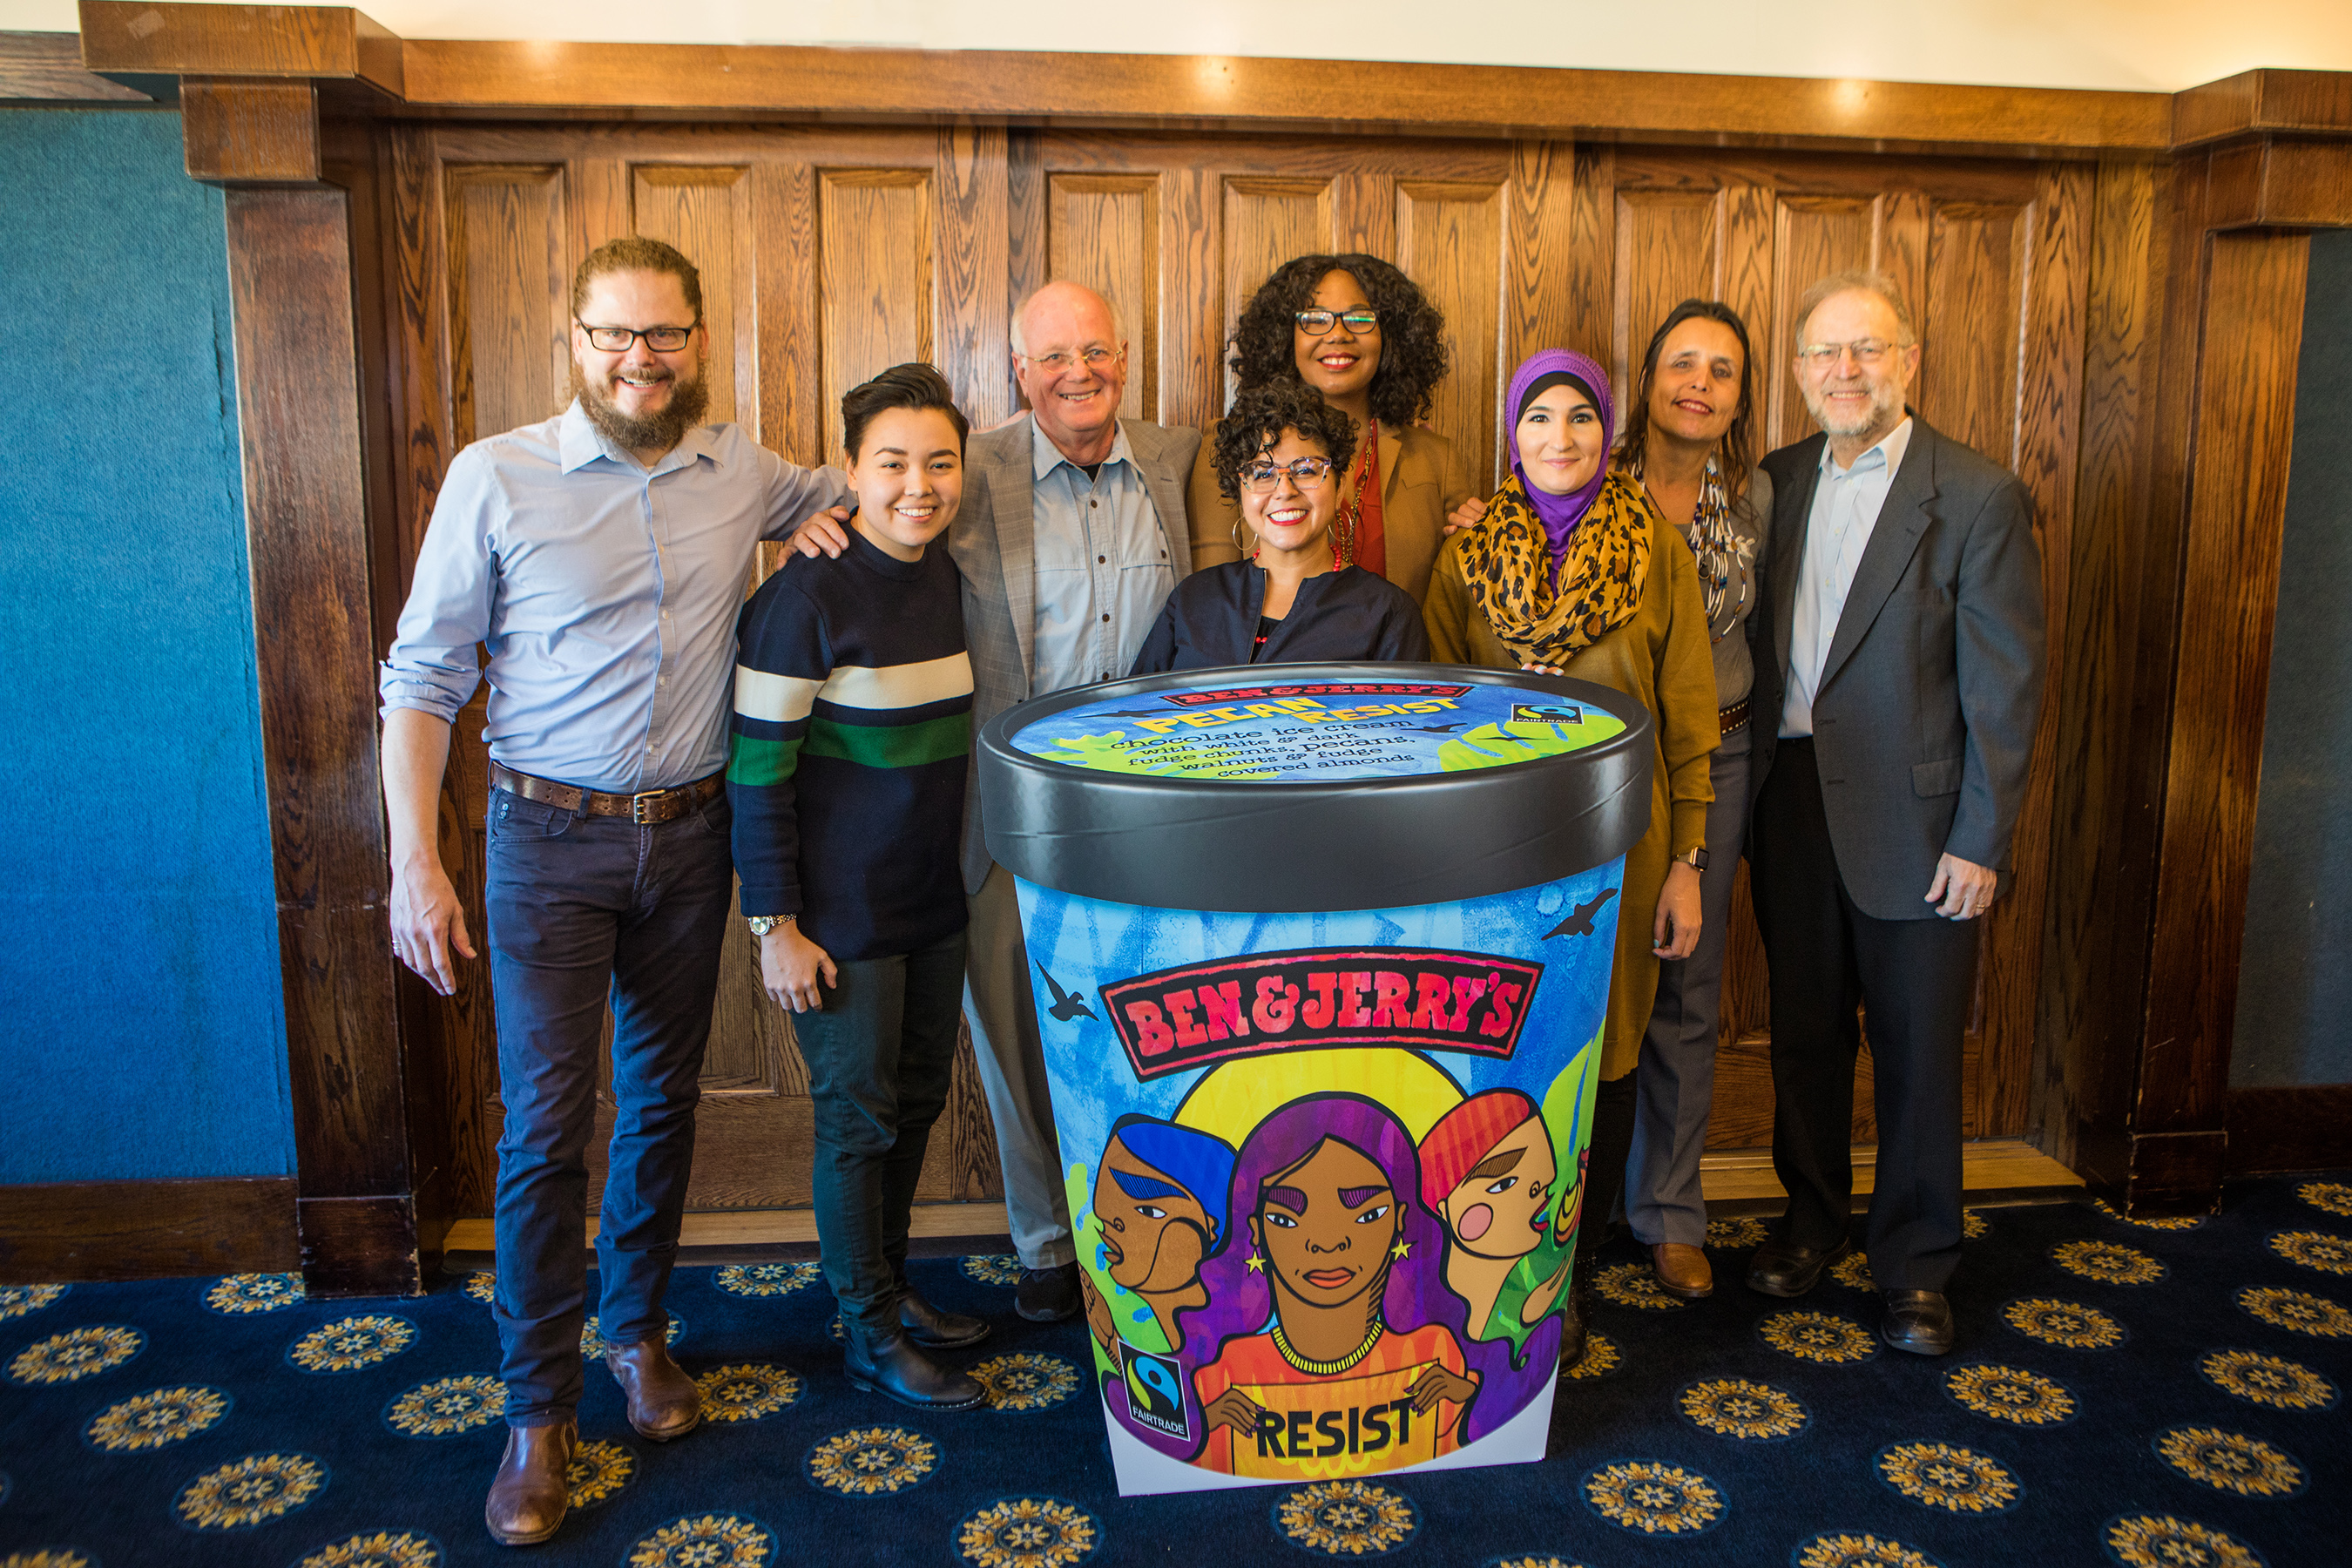 Ben & Jerry's launched Pecan Resist today to support groups working for justice. Pictured L to R: Matthew McCarthy, Ben & Jerry's CEO; Dani Marrero Hi, Neta; Ben Cohen, Ben & Jerry's Co-Founder; Favianna Rodriguez, artist-activist; Brandi Collins-Dexter, Color Of Change; Linda Sarsour, Women's March; Winona LaDuke, Honor the Earth; Jerry Greenfield, Ben & Jerrys Co-Founder.